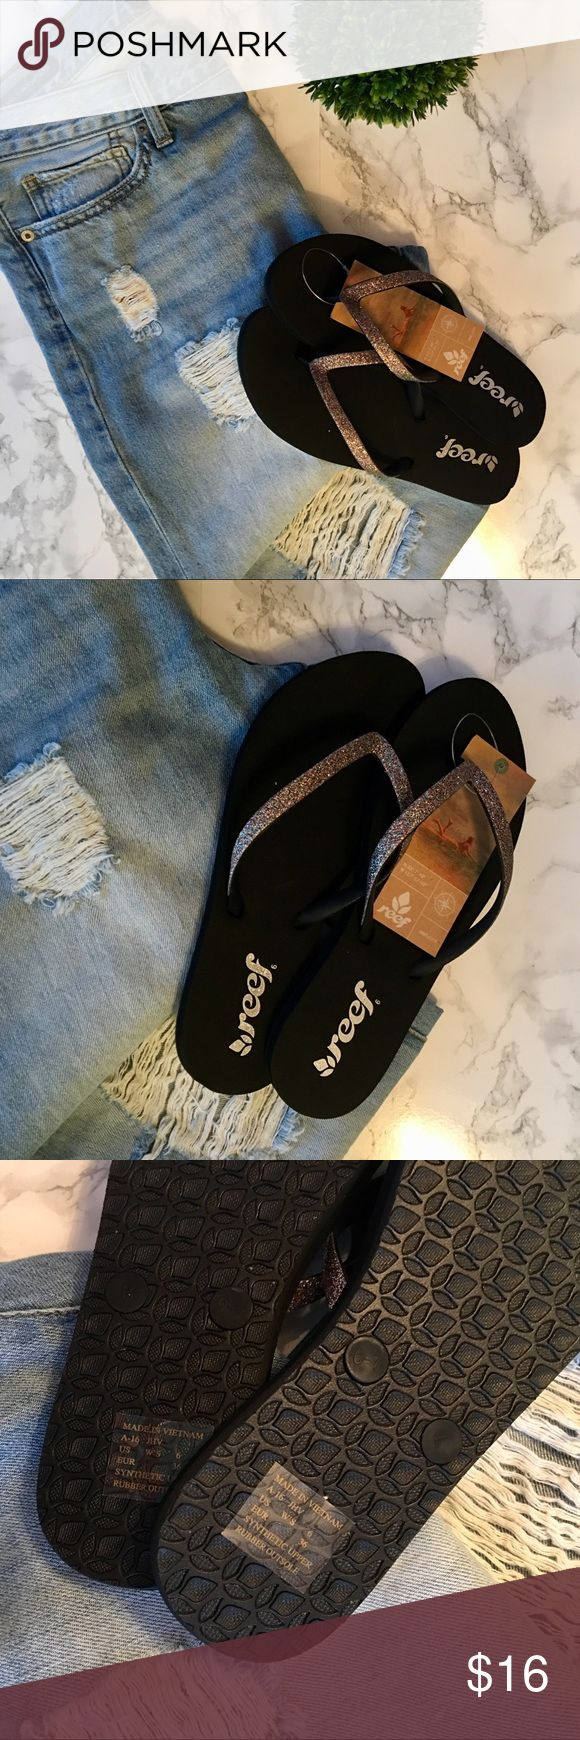 Women's Reef Flip Flops Details: New With Tags Women's Reef Flip Flops  Style: Thong, Flip Flops Size: 6 Brand: Reef Condition: New with Tag Reasonable offers considered. 🙂 Please be considerate.   Bundle and save! 📦📭  Thank you for stopping by to check out my closet! 🙂 Reef Shoes Sandals